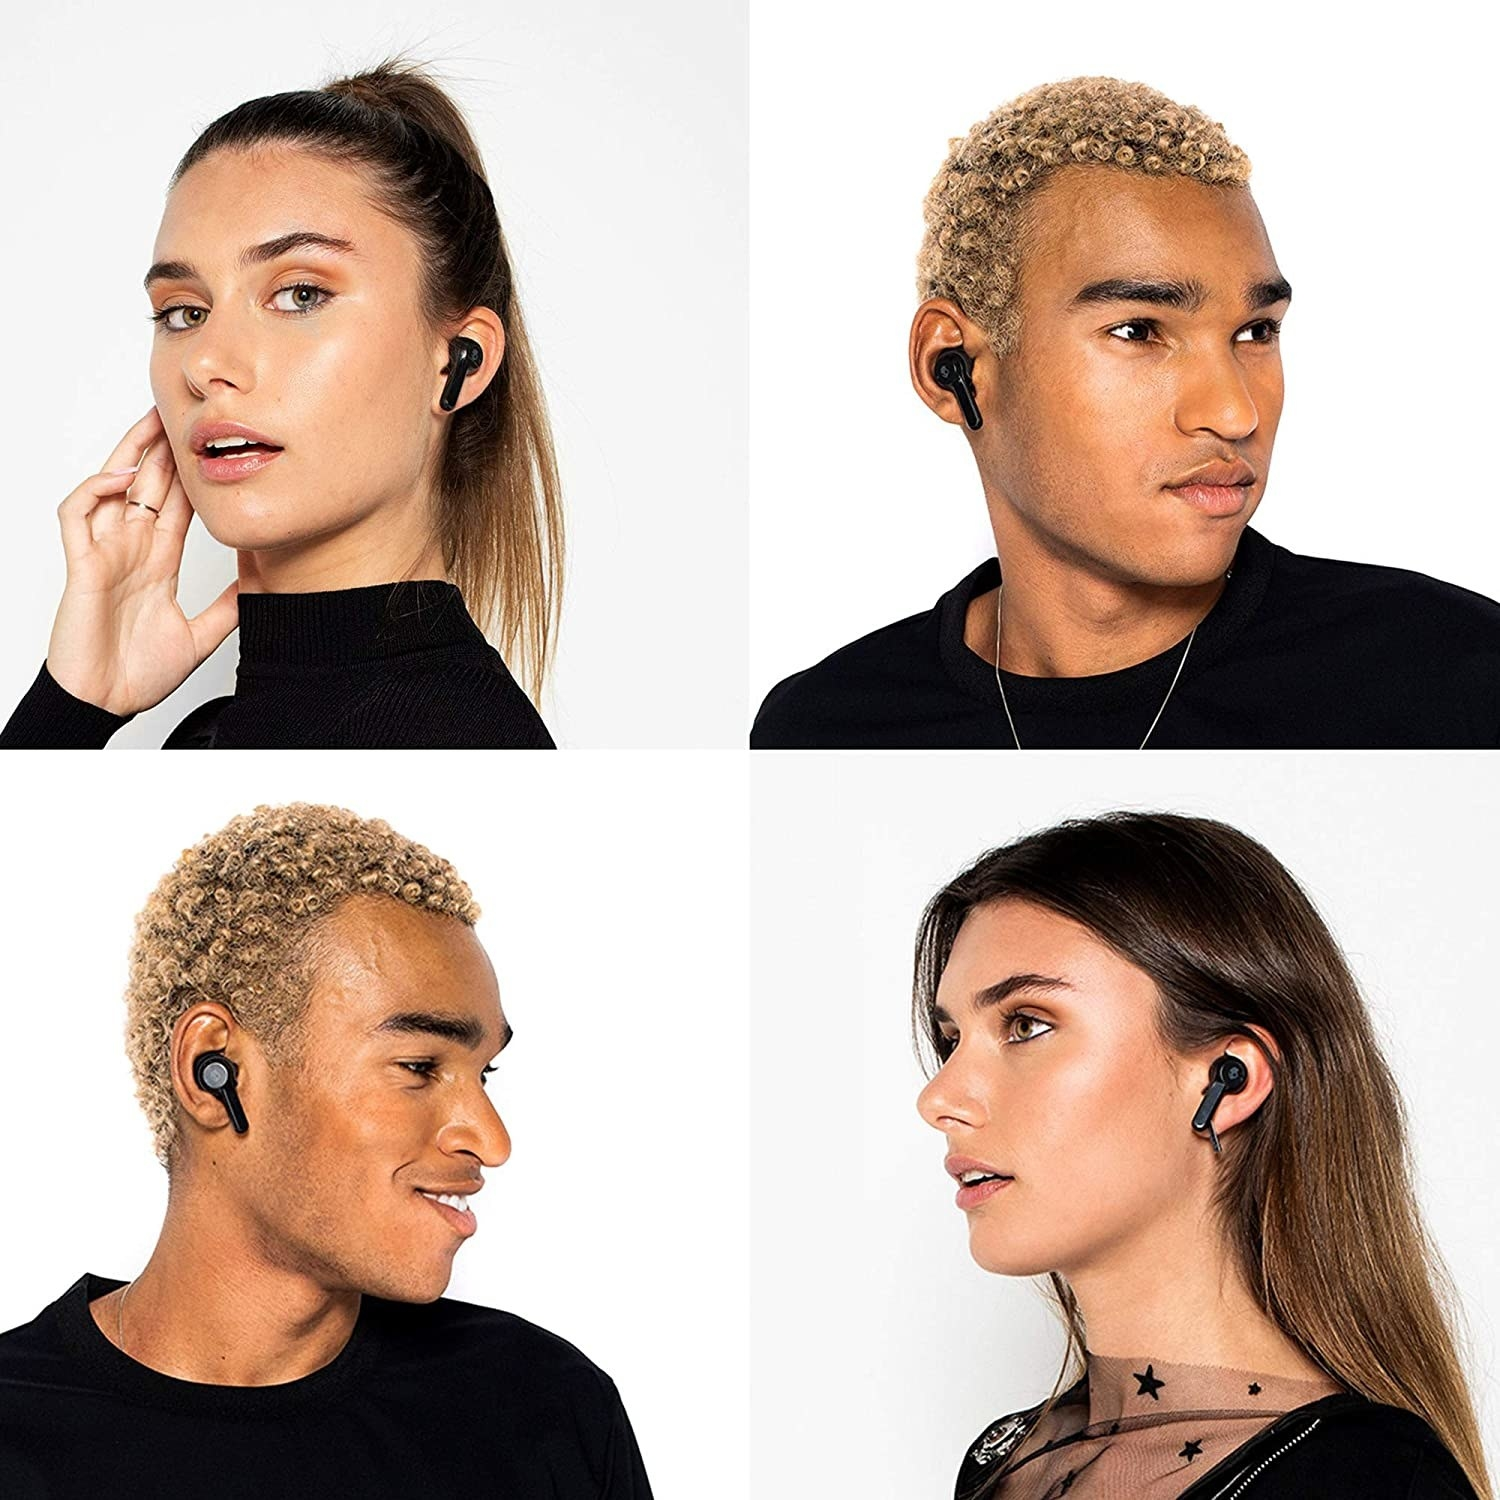 Four models with the black earbuds in their ears